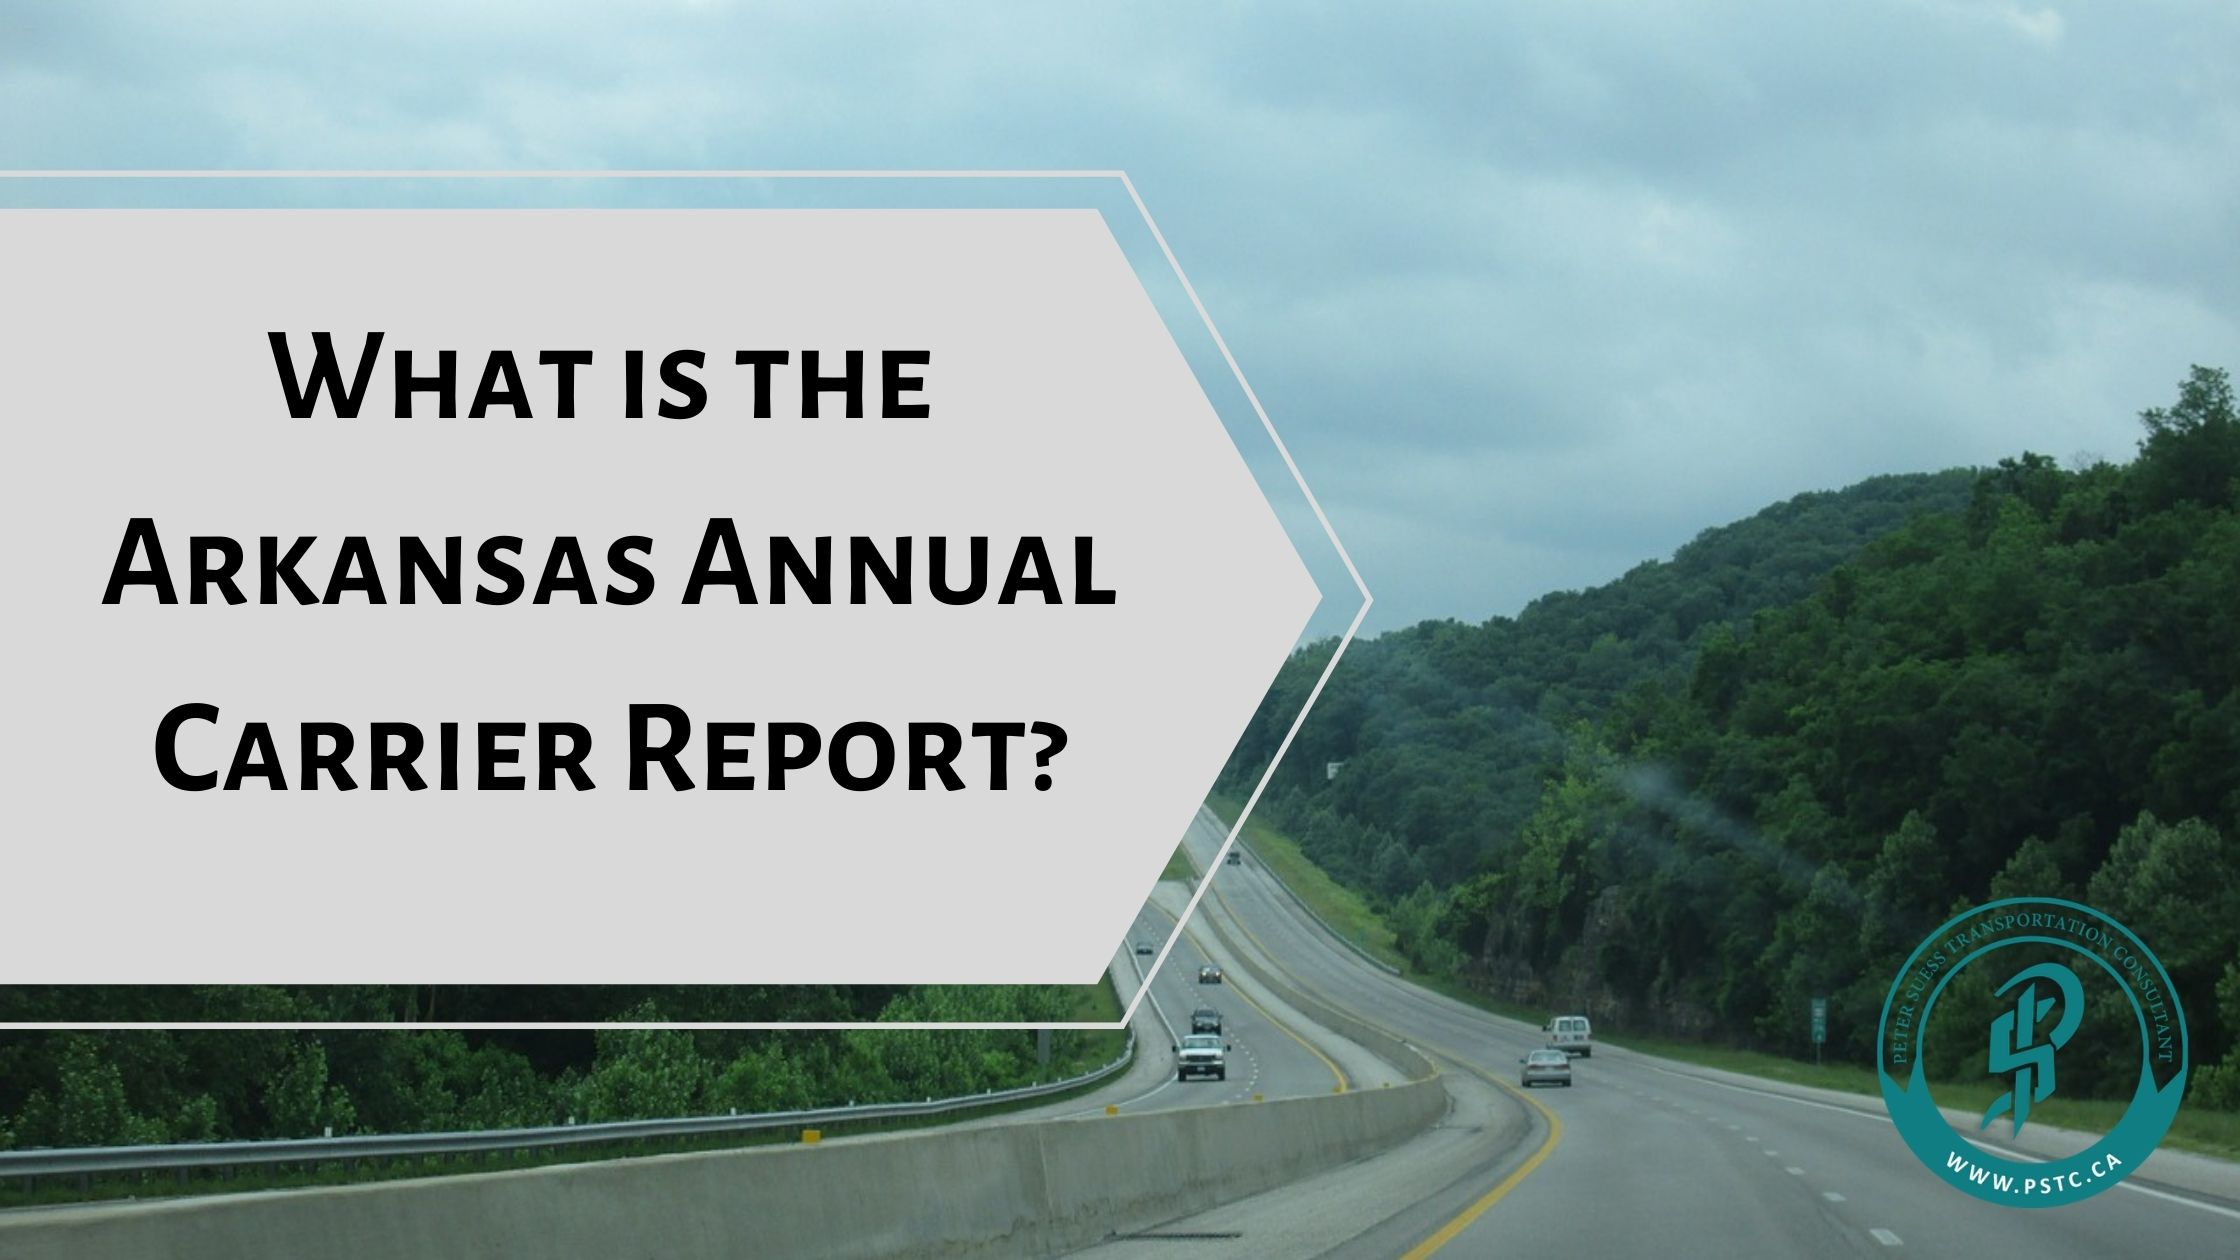 What is the Arkansas Annual Carrier Report